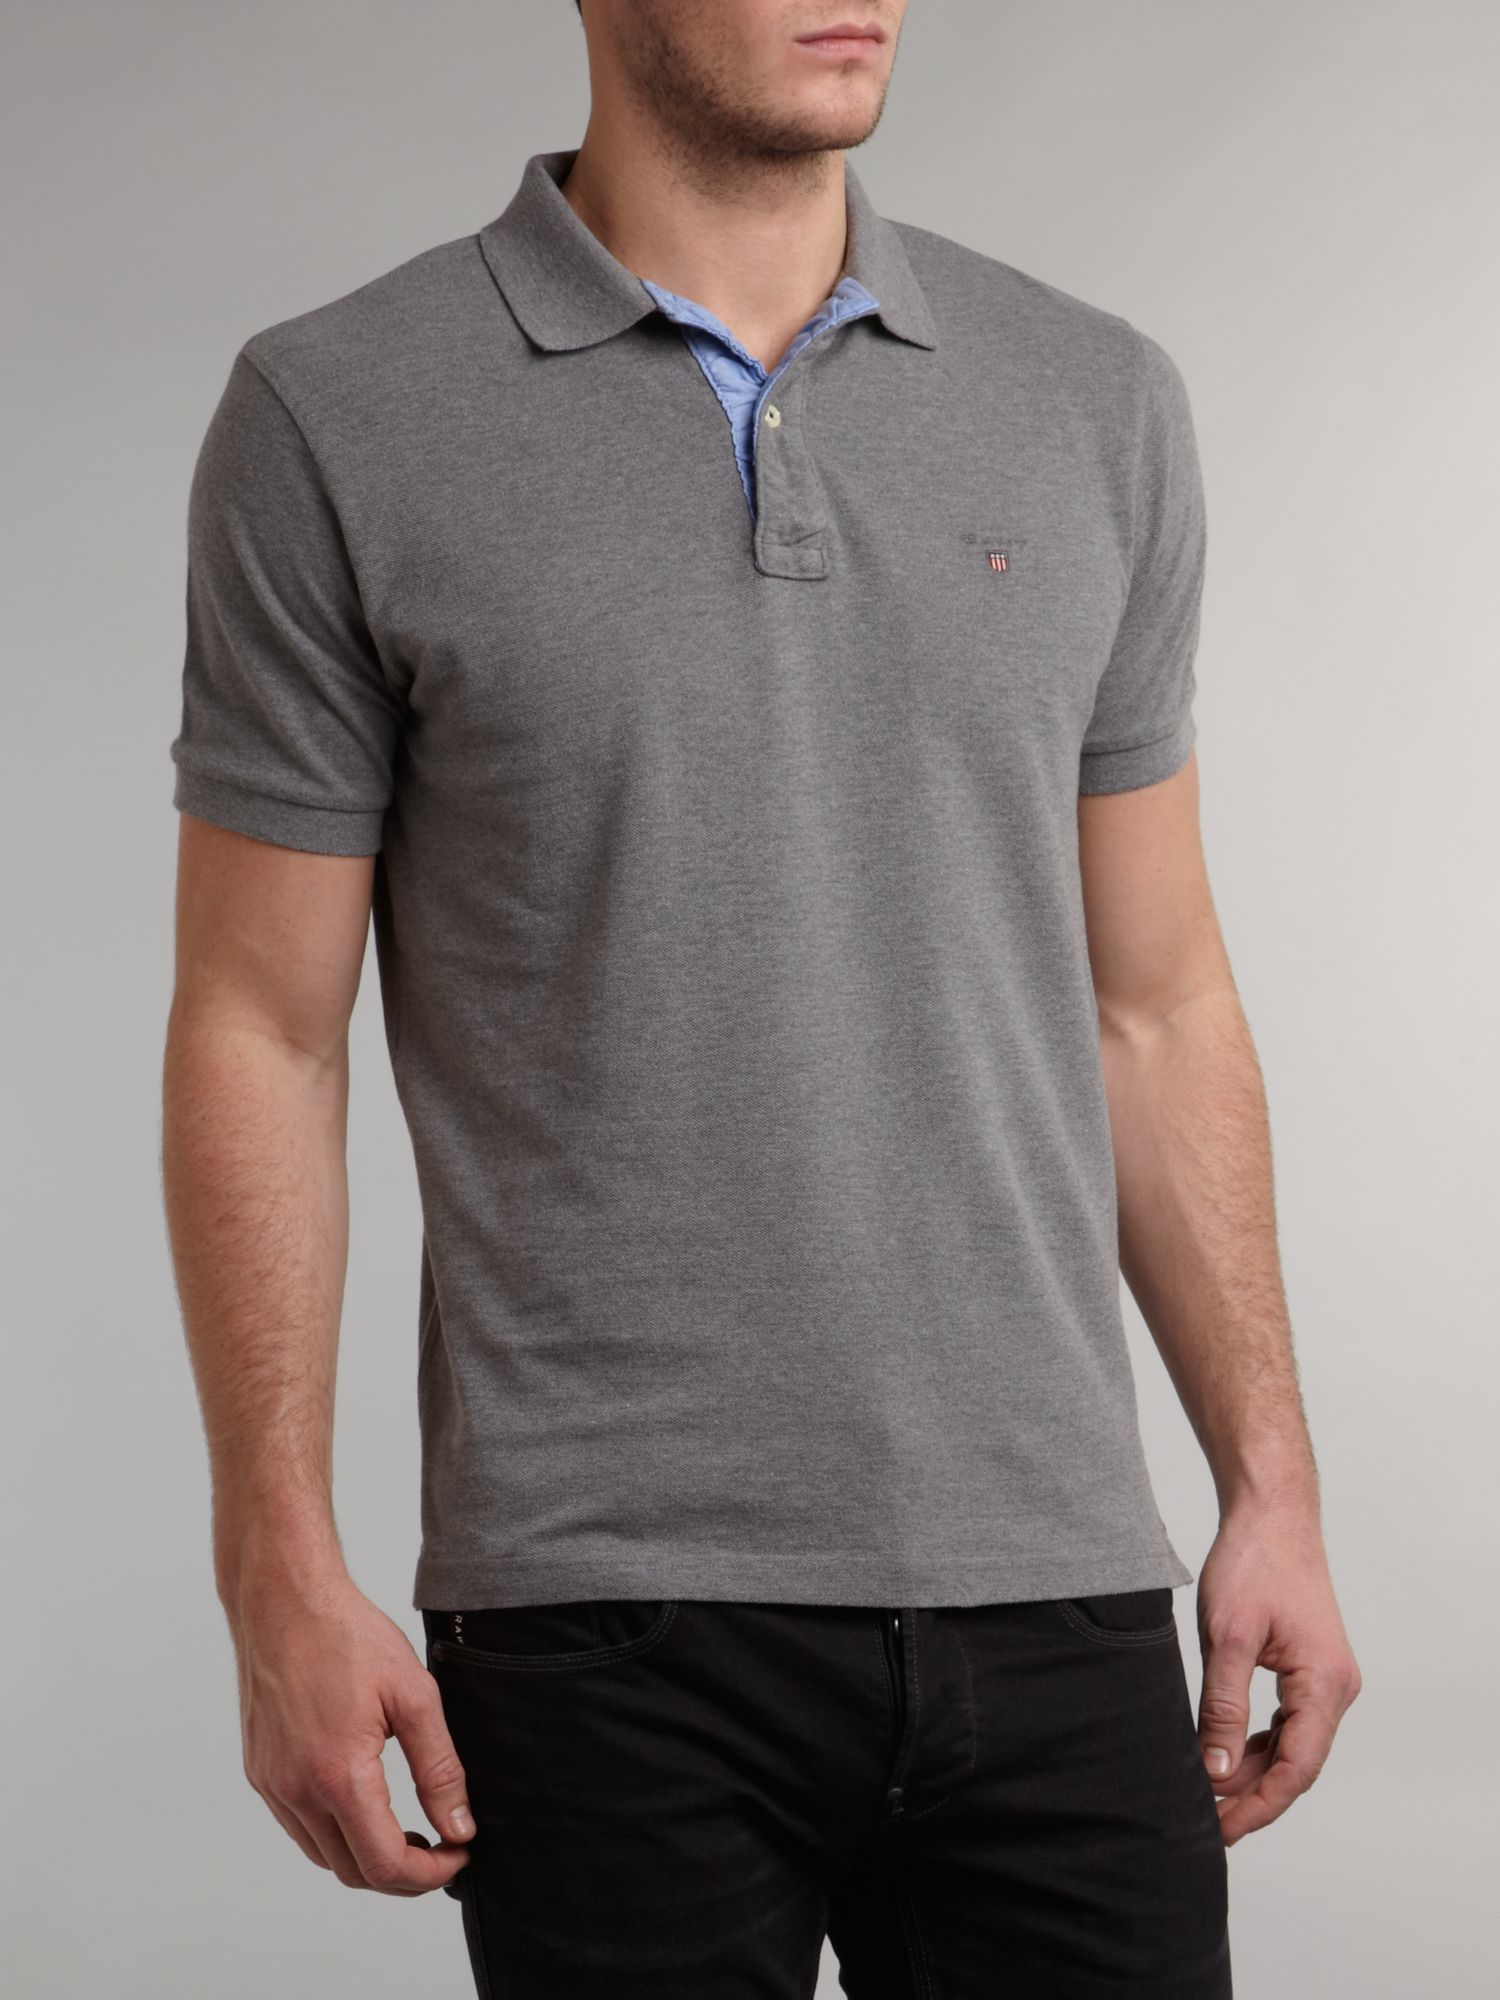 Regular fit solid pique polo shirt